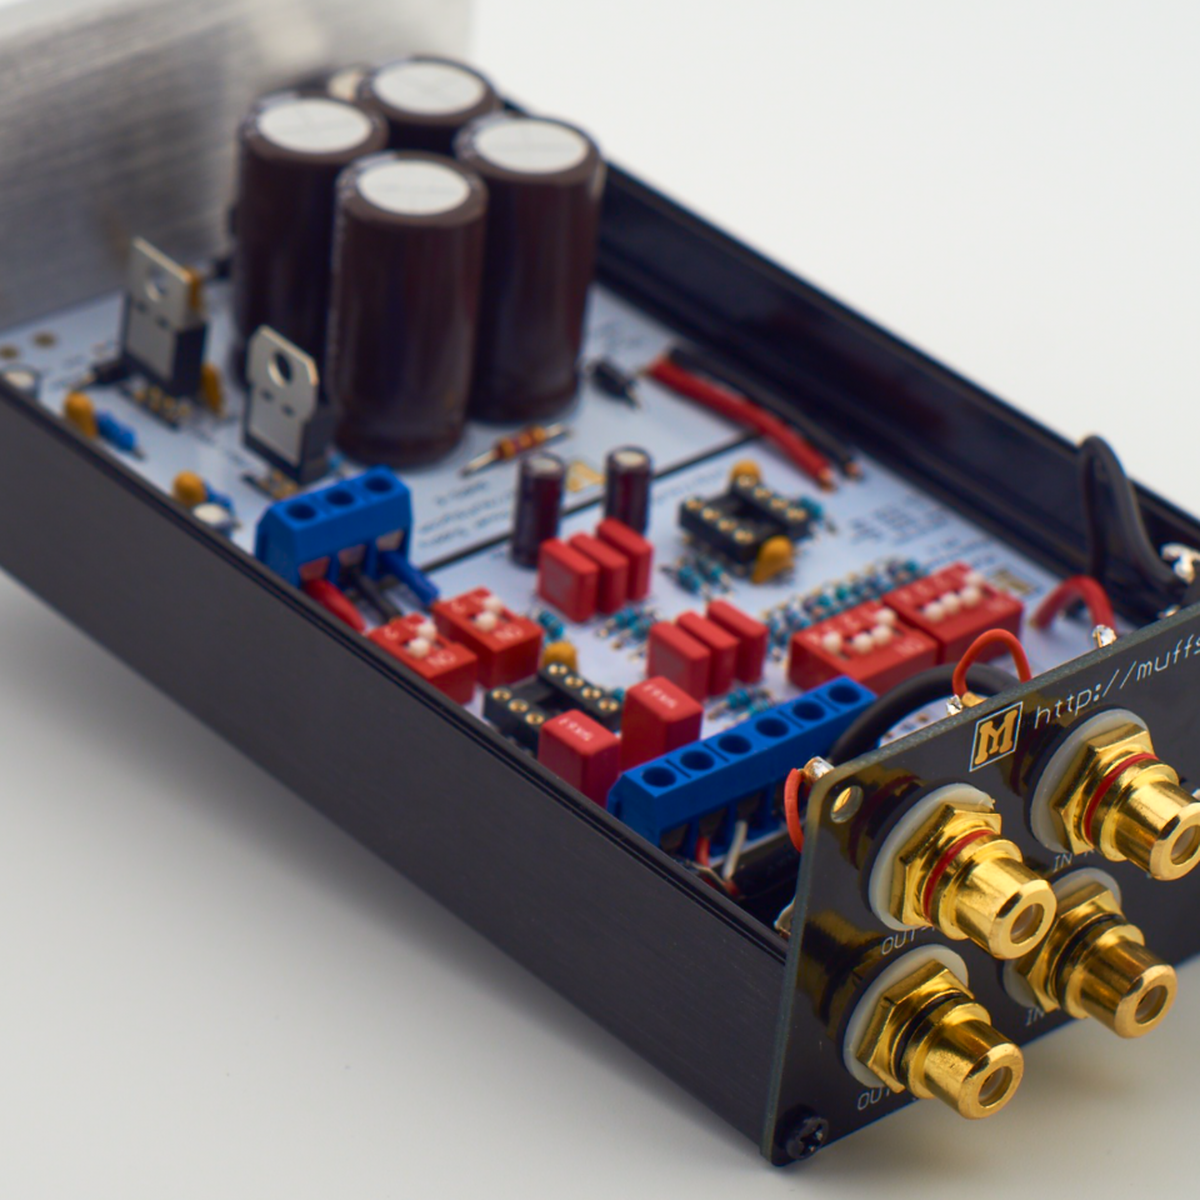 Muffsy Phono Preamp Kit From On Tindie Wiering 220v 20 Amp Straight Blade Outlet Electrical Diy Chatroom